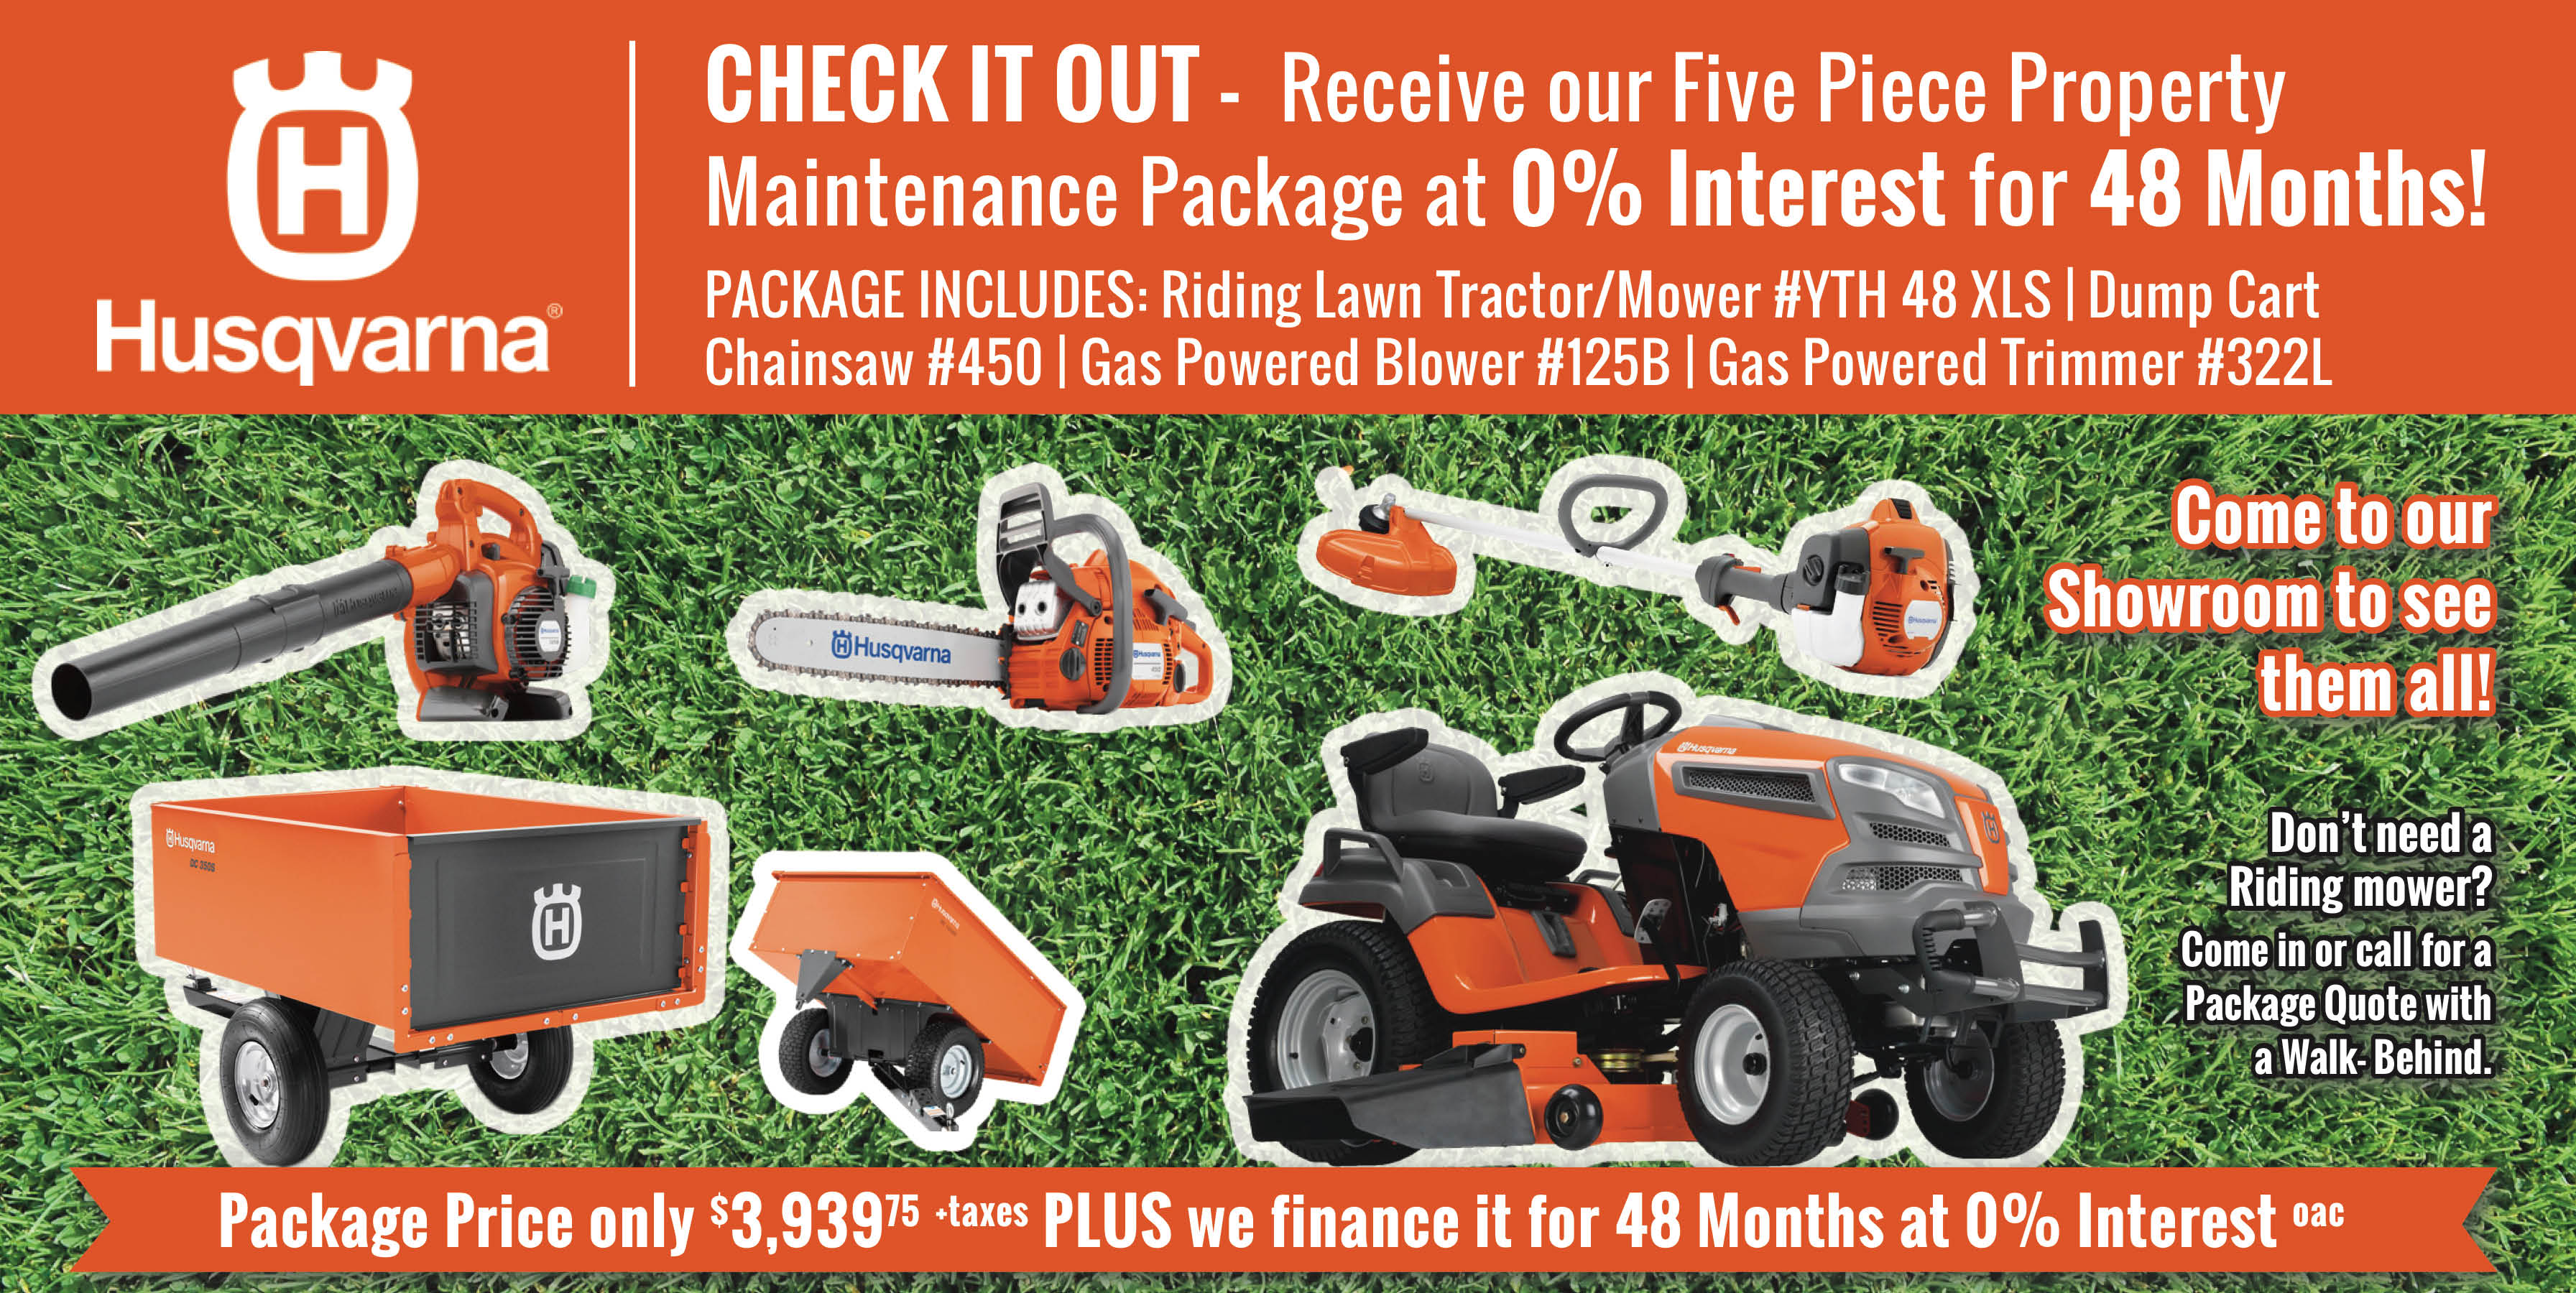 Five Piece Property Maintenance Package, Finance, 0% Interest, 48 Months, Husqvarna, riding lawn tractor mower, dump cart, chainsaw, gas powered blower, gas powered trimmer